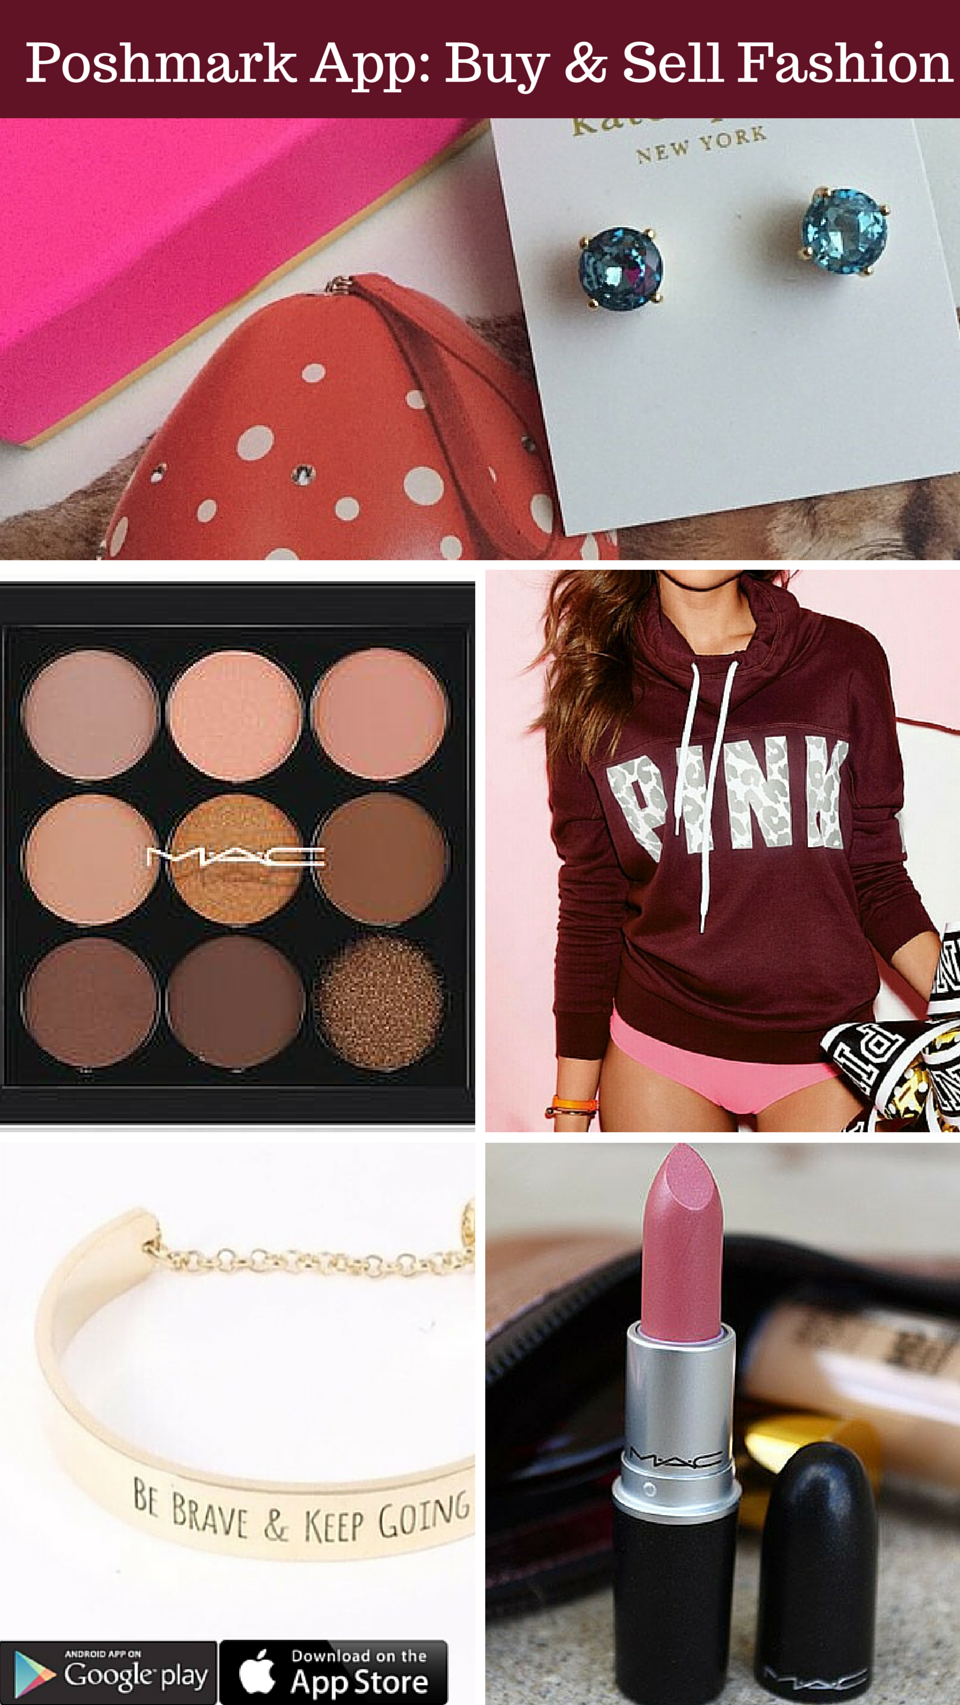 Exclusive sale! Shop trending items starting at 15! Get